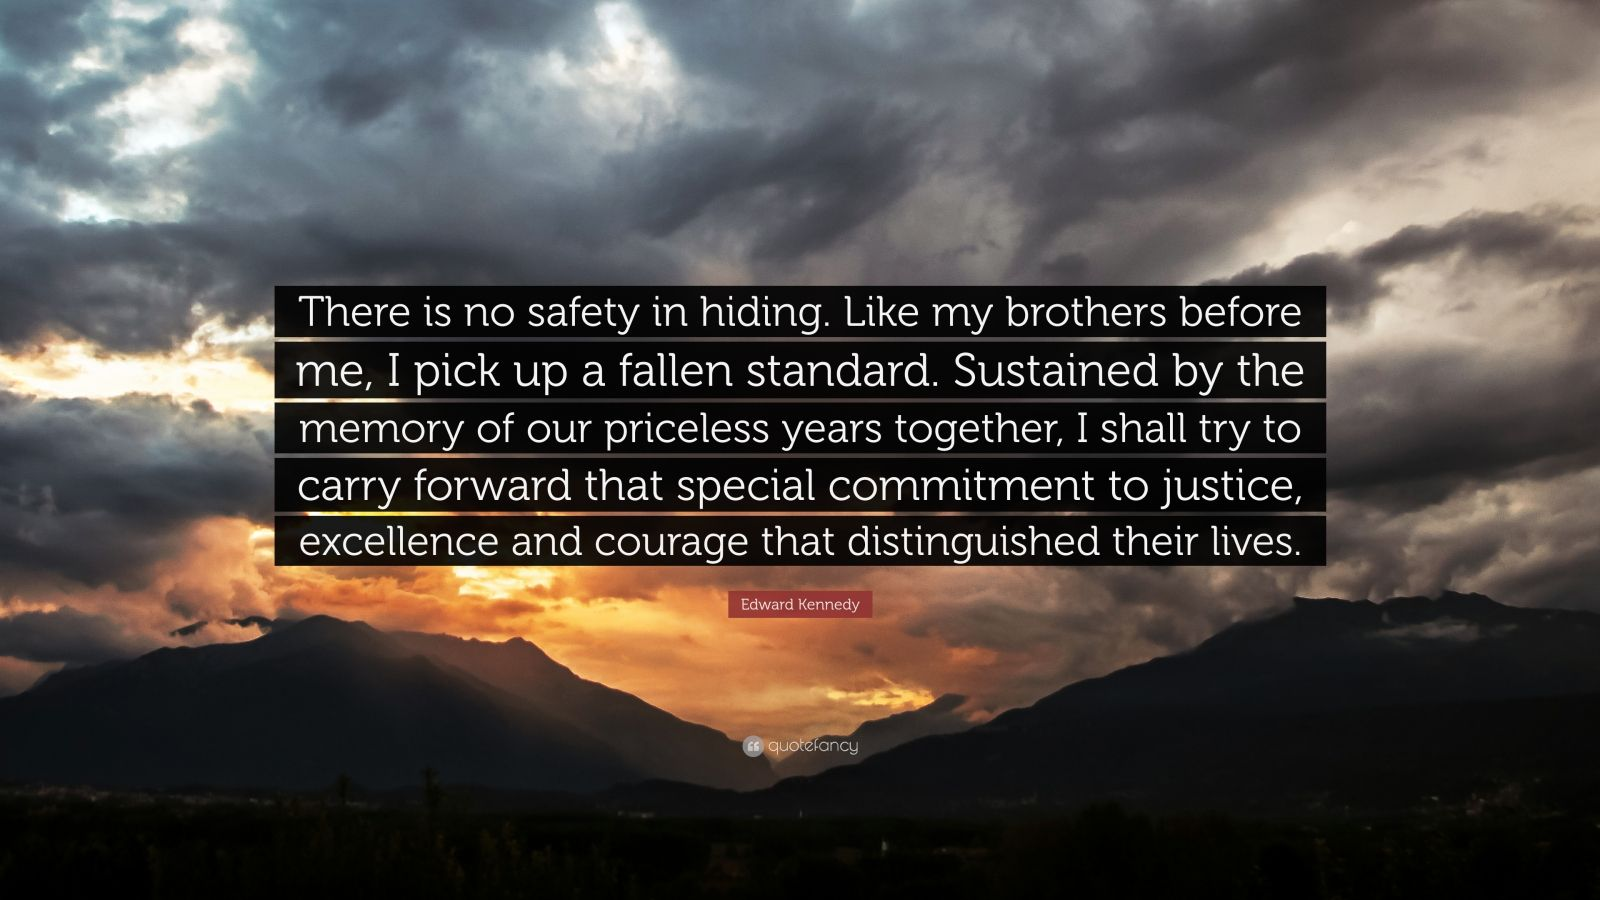 "Edward Kennedy Quote: ""There is no safety in hiding. Like my brothers before me, I pick up a fallen standard. Sustained by the memory of our priceless years together, I shall try to carry forward that special commitment to justice, excellence and courage that distinguished their lives."""